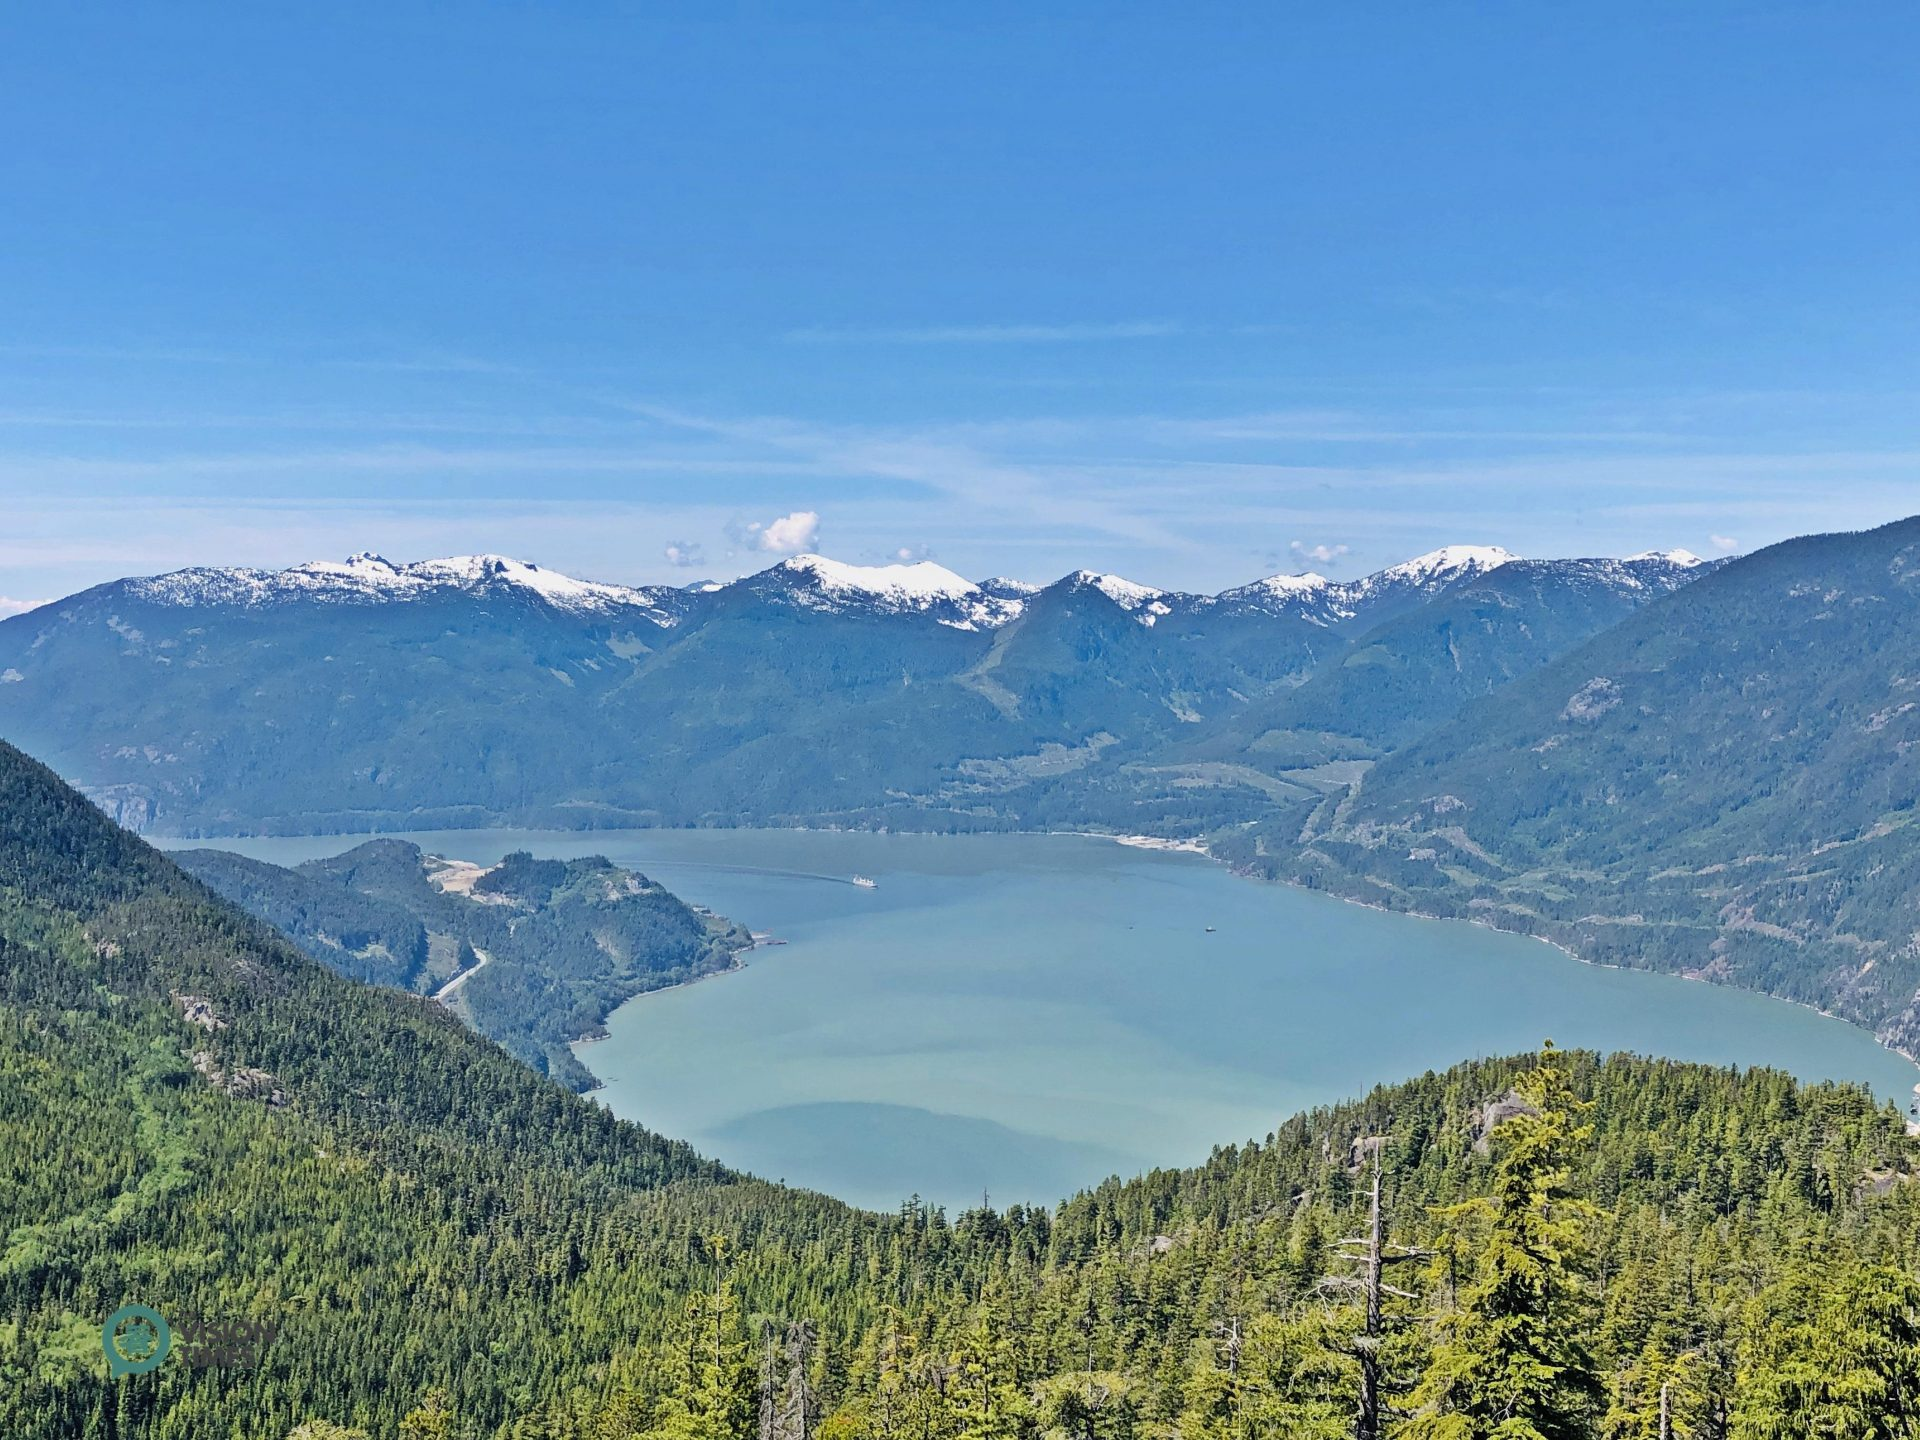 Visitors can take in panoramic views from the trails around the Summit Lodge. (Image: Billy Shyu / Vision Times)